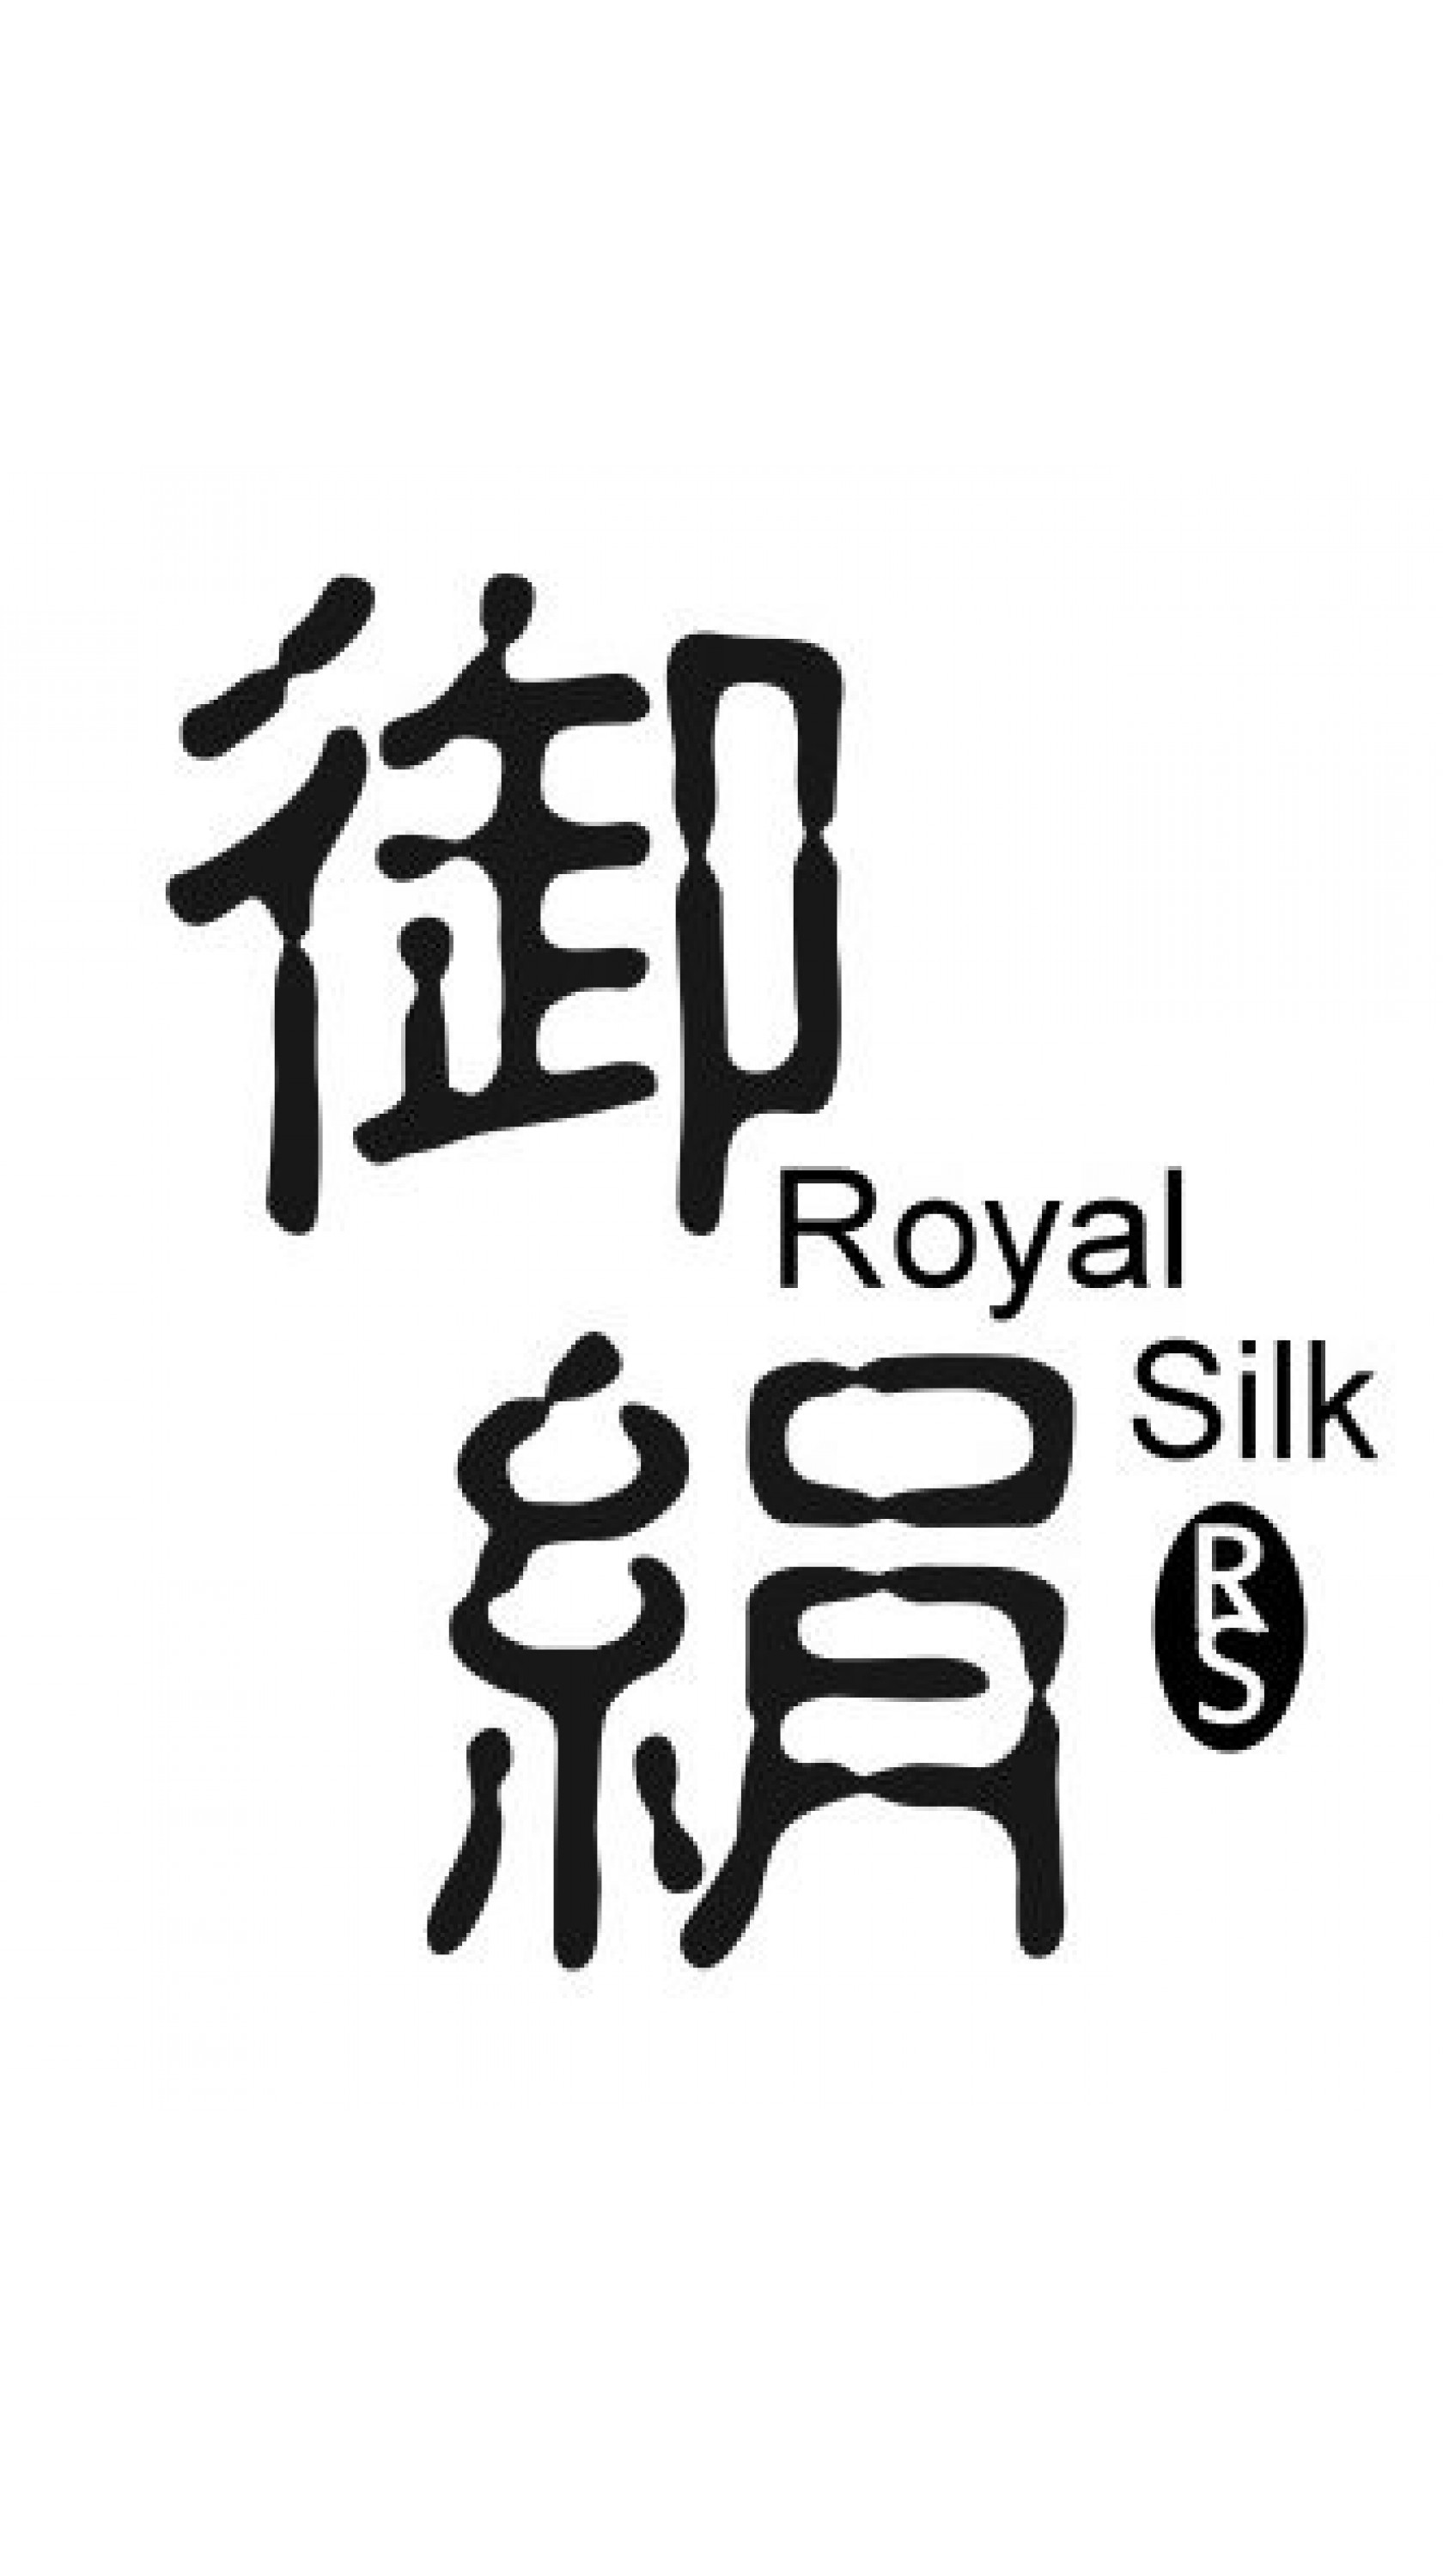 【Royal Silk】 (5)